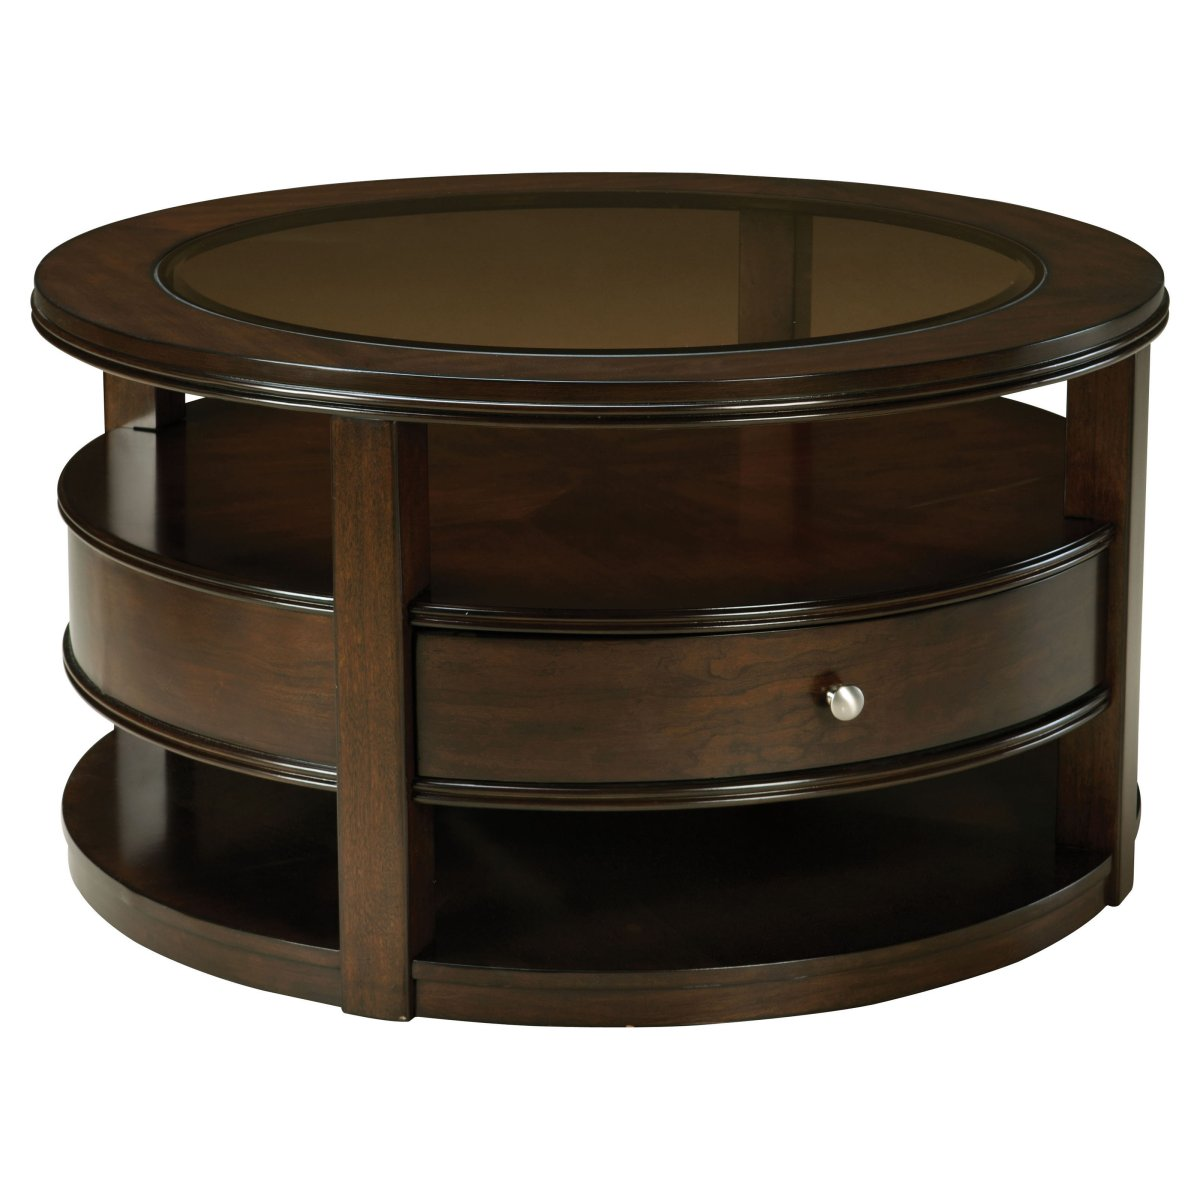 Awesome Round Coffee Tables with Storage HomesFeed : Dark Wooden Round Coffee Tables With Storage Drawers from homesfeed.com size 1200 x 1200 jpeg 99kB